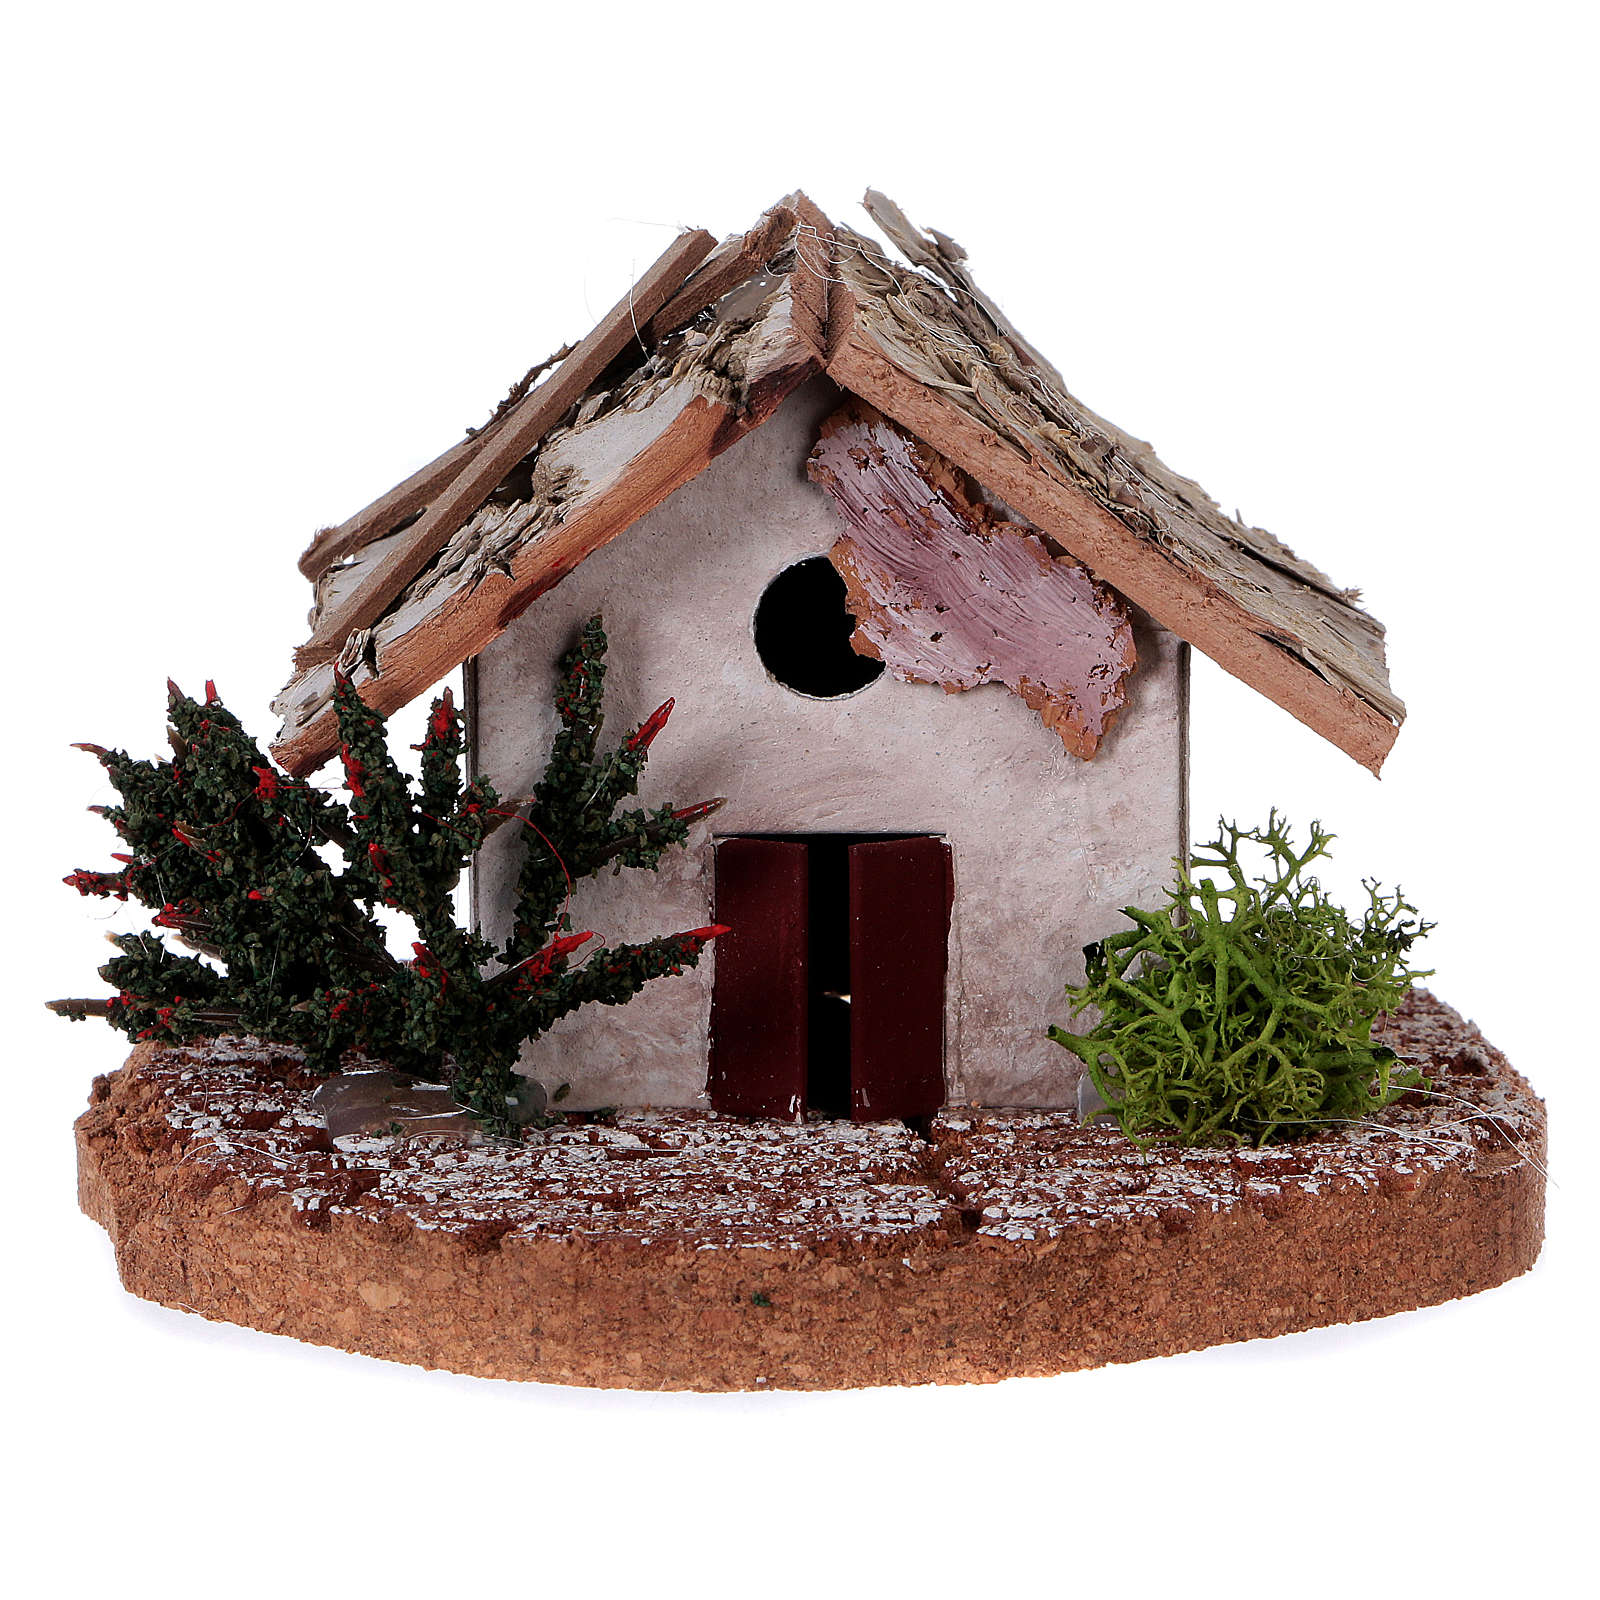 Farmhouse 10x7x7 cm for Nativity Scene 4